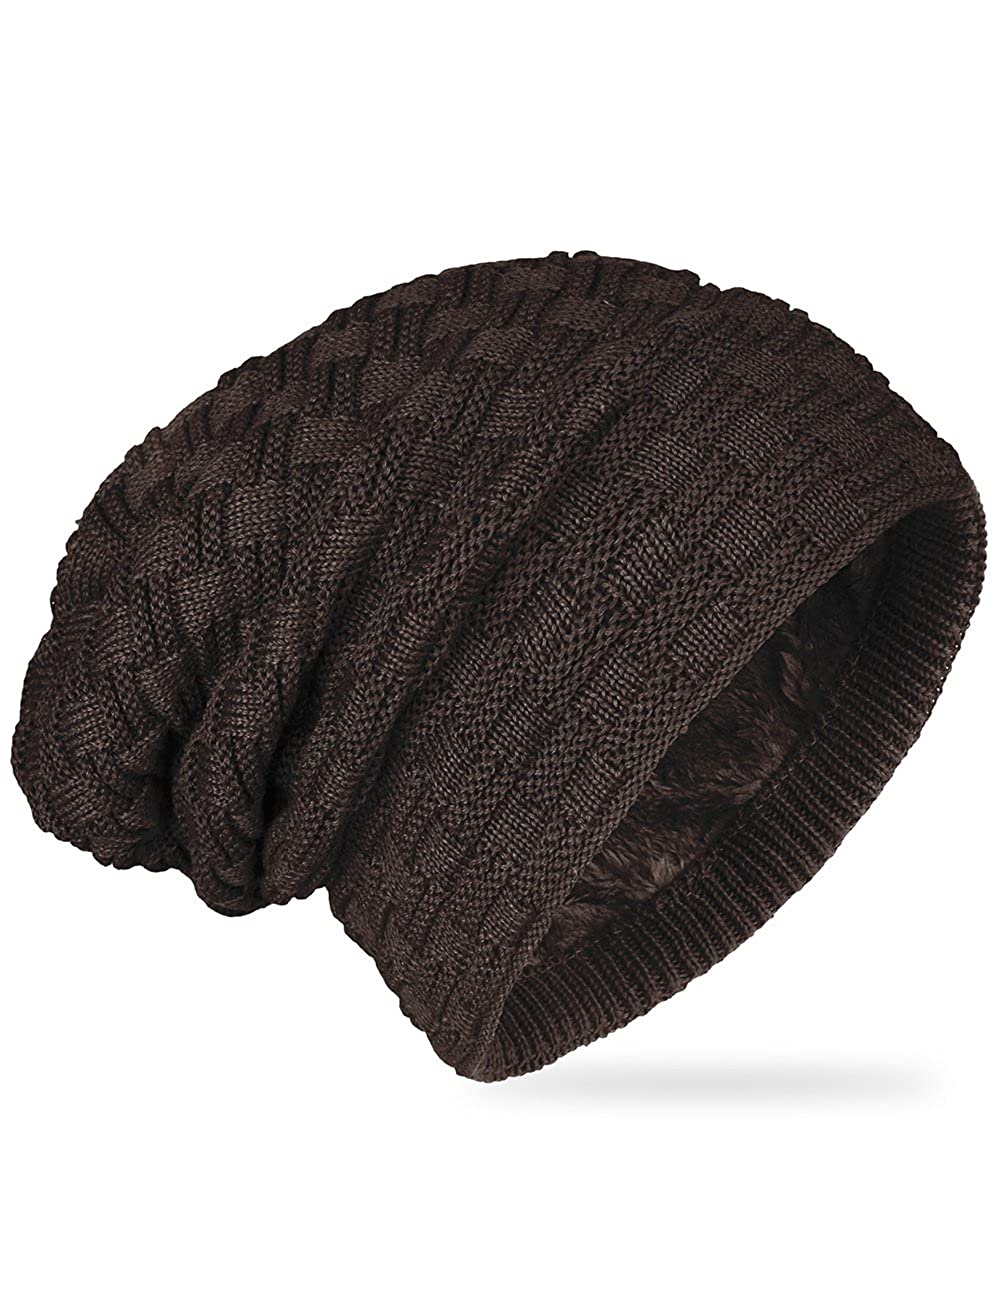 ISASSY Unisex Slouch Beanie Warm Knitted Winter Hat Men Women Black UK-FWC8015BK